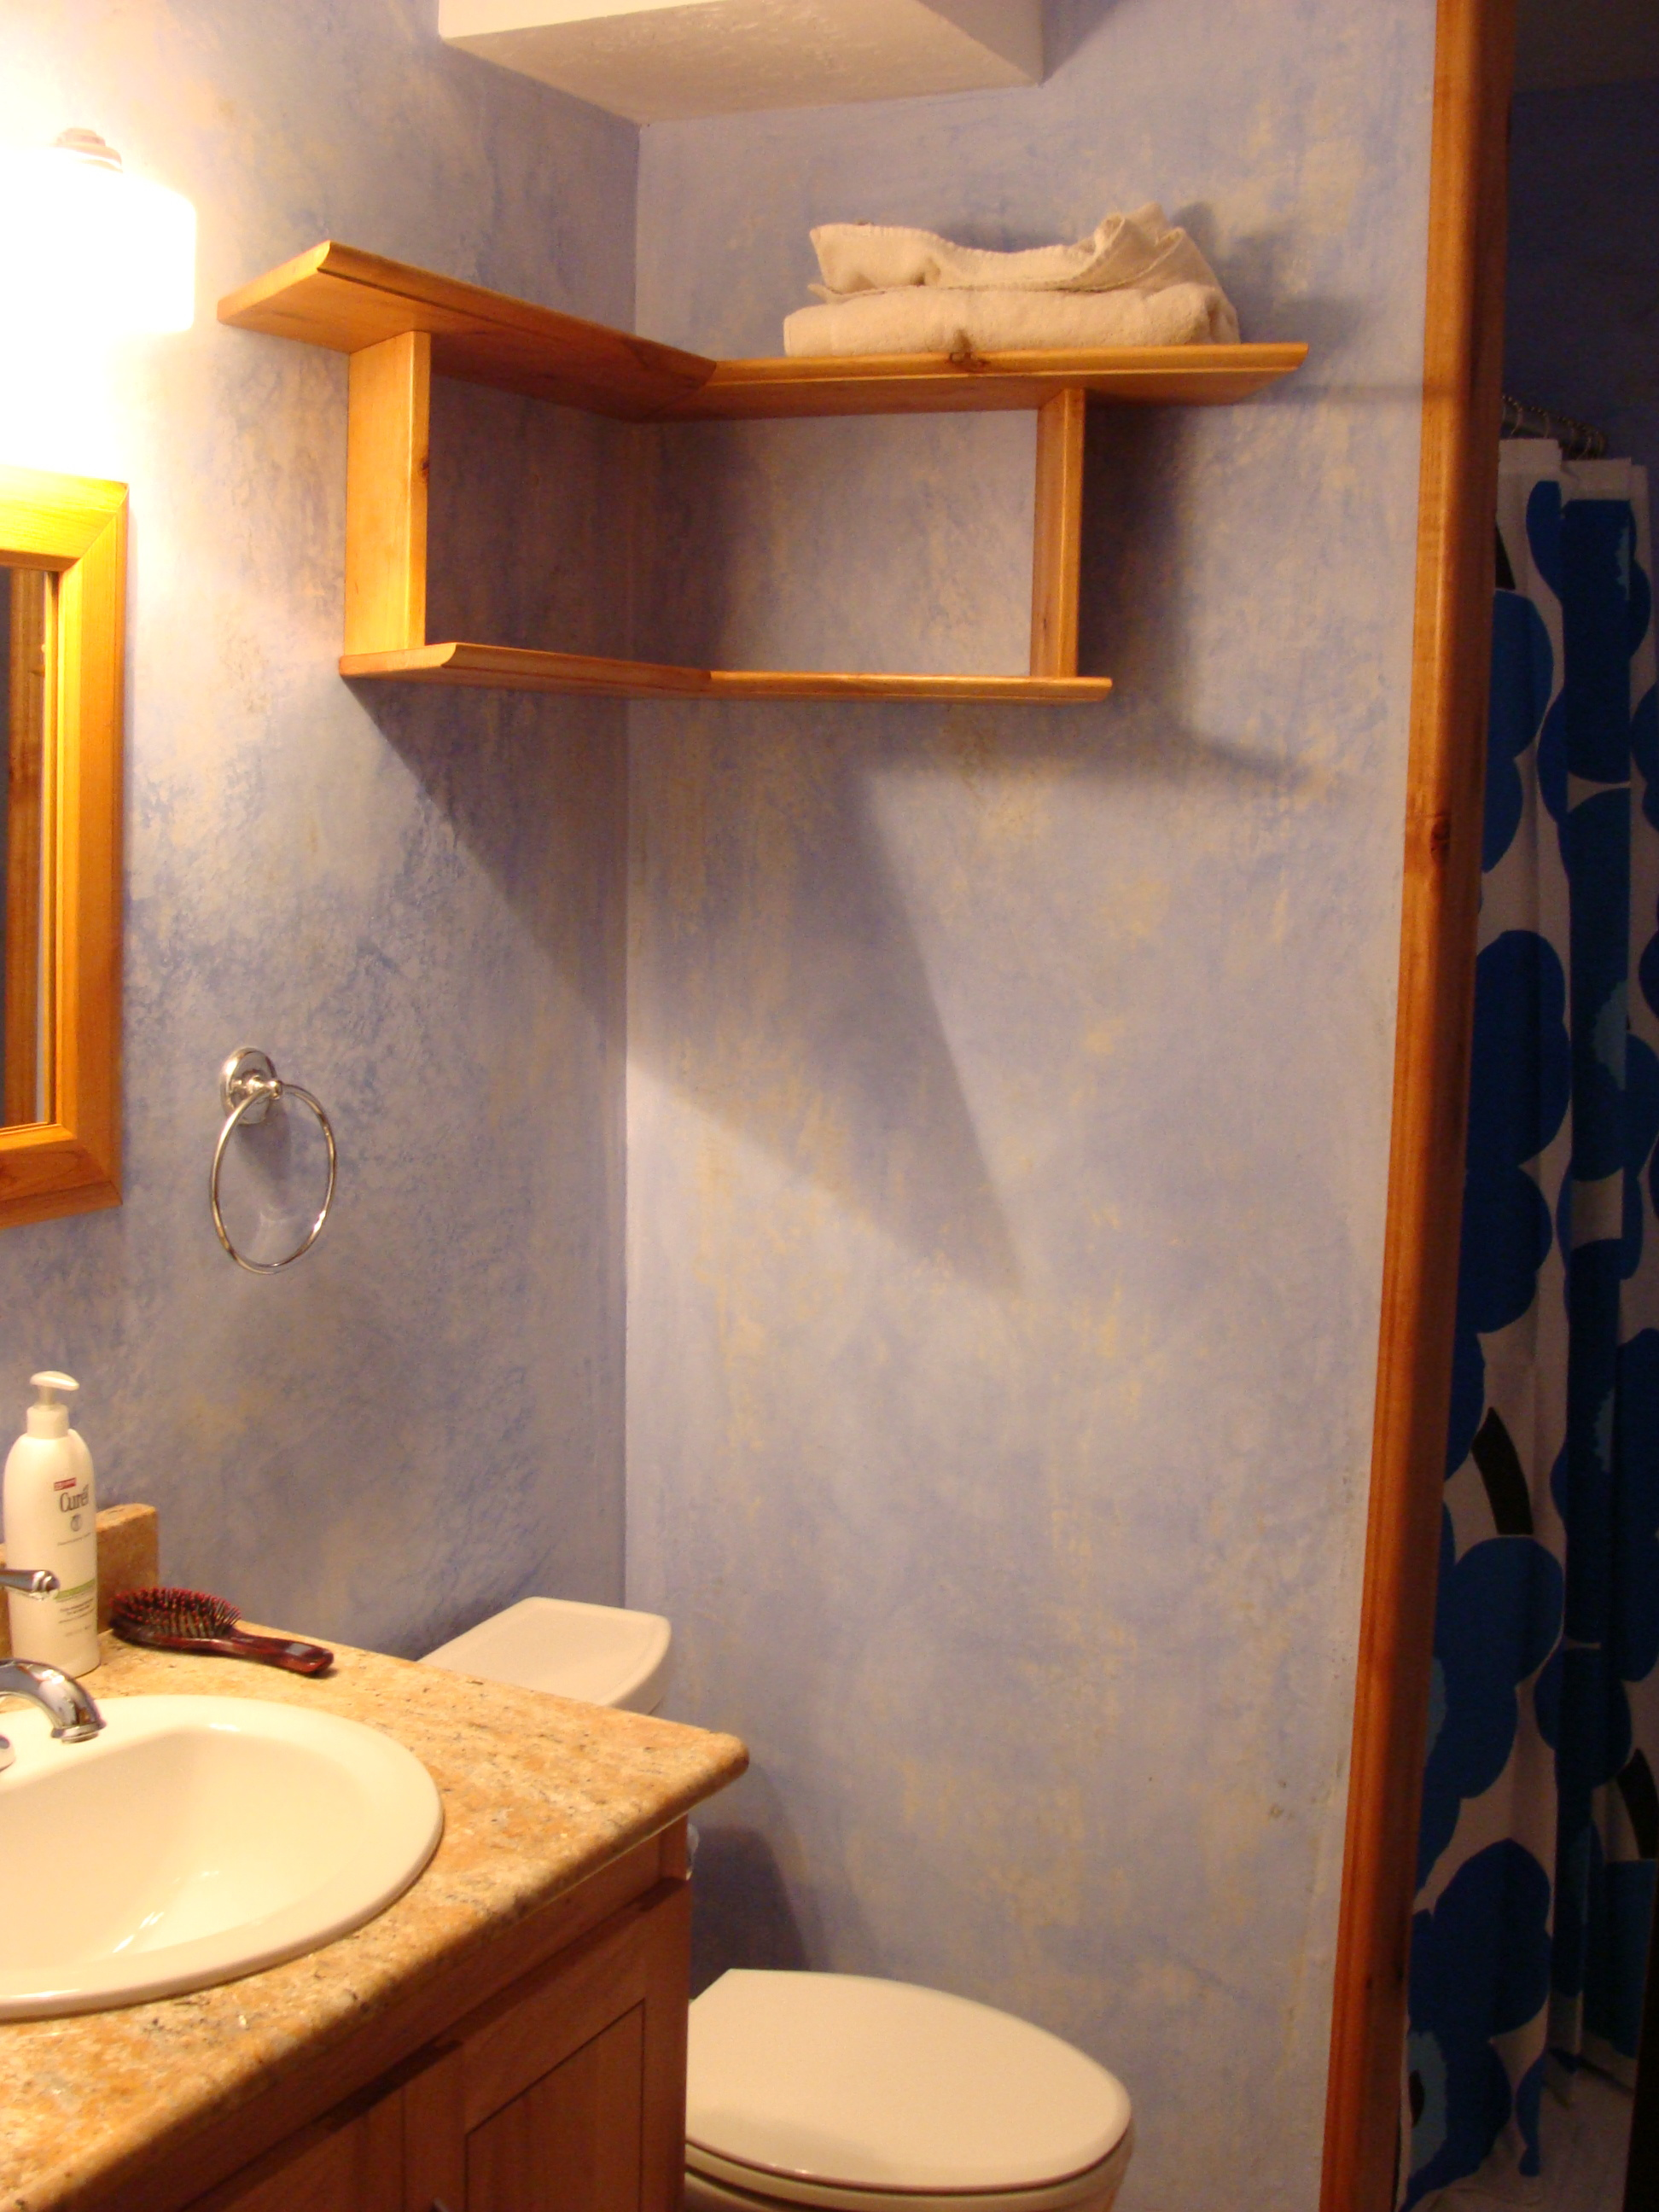 Bathroom Remodel Retrofitting With Natural Materials